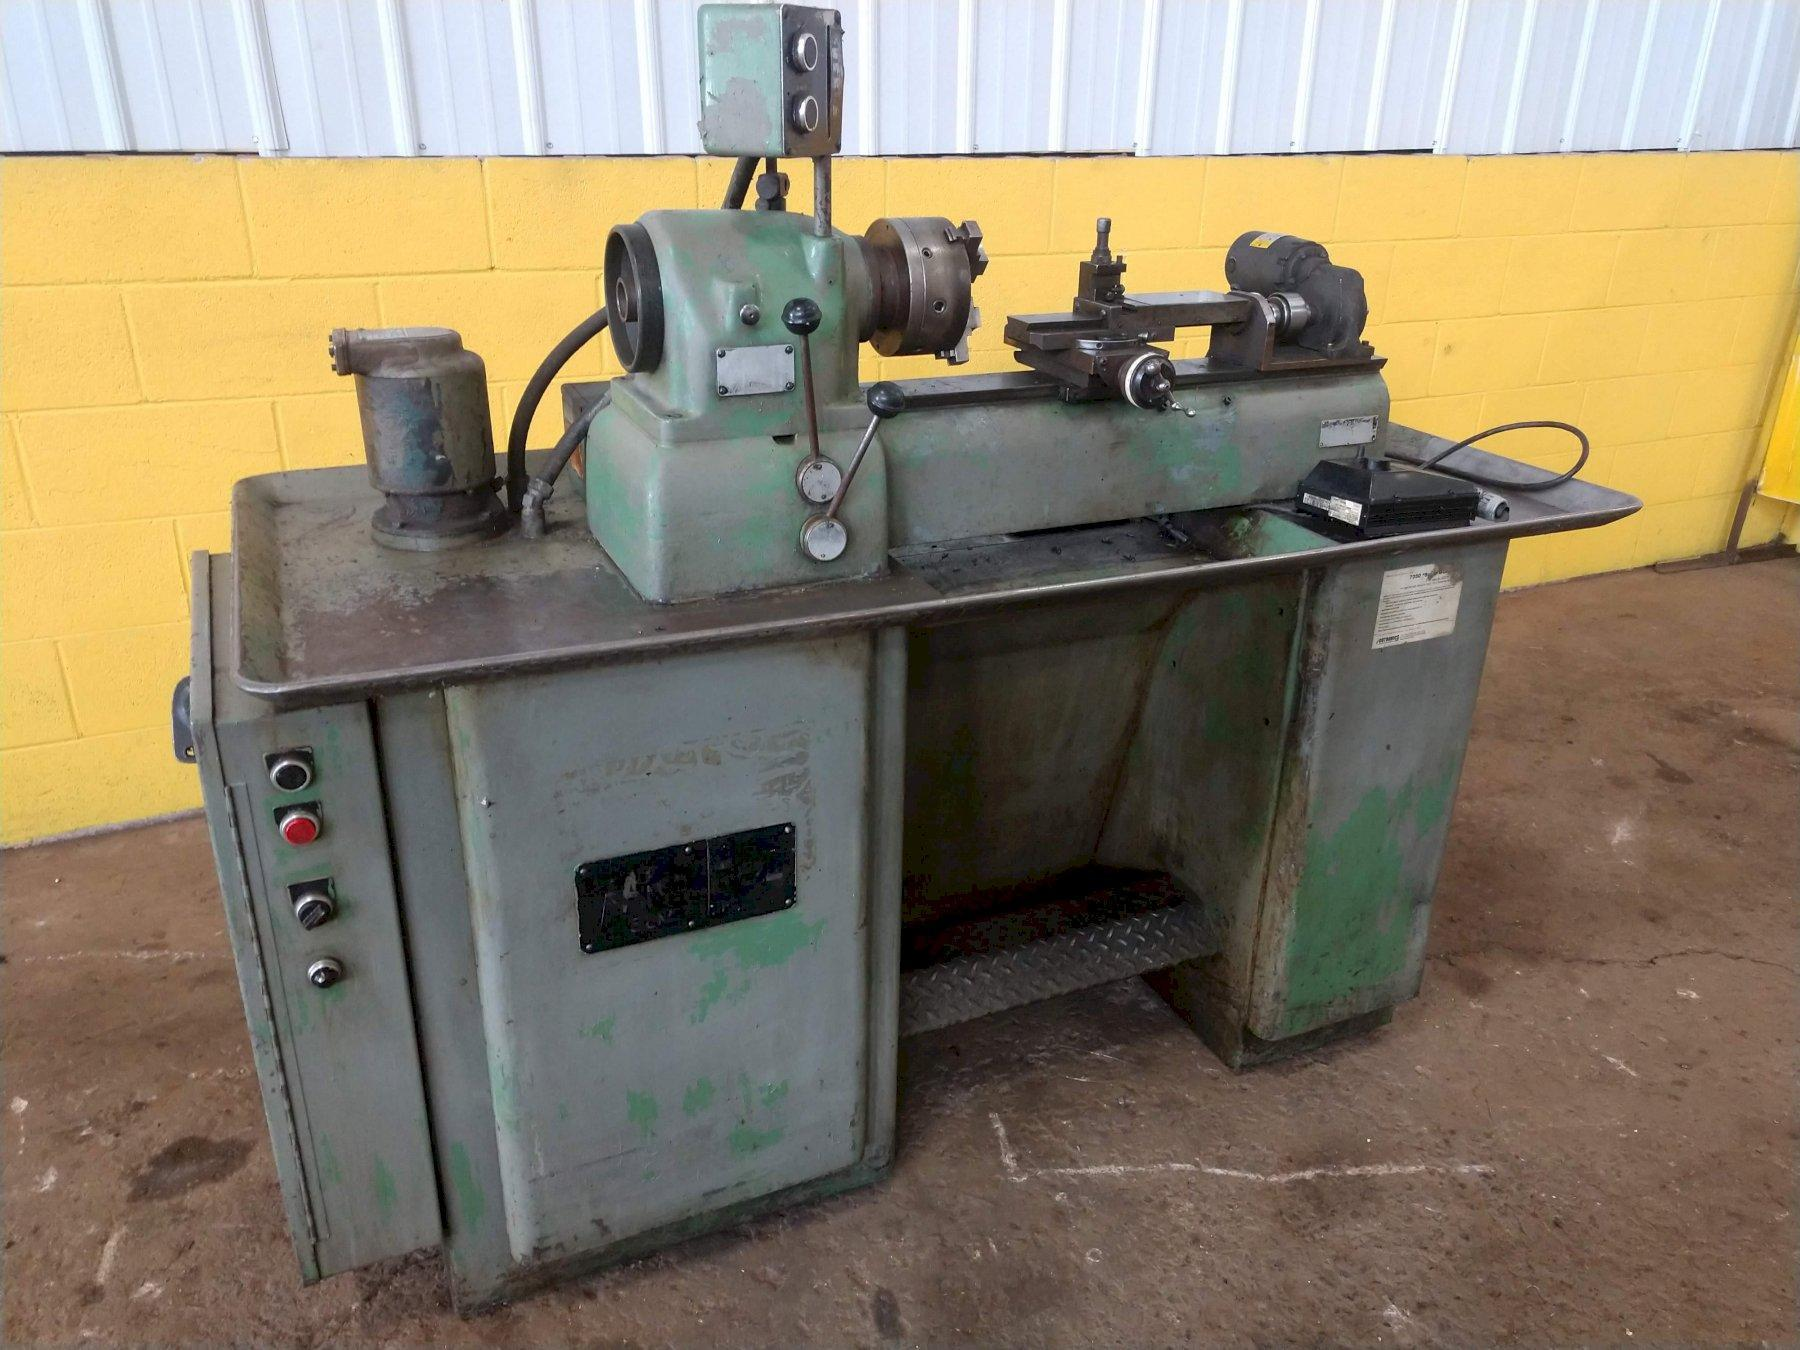 HARDINGE MODEL DSM 59 FACING / ENGINE LATHE: STOCK #13153